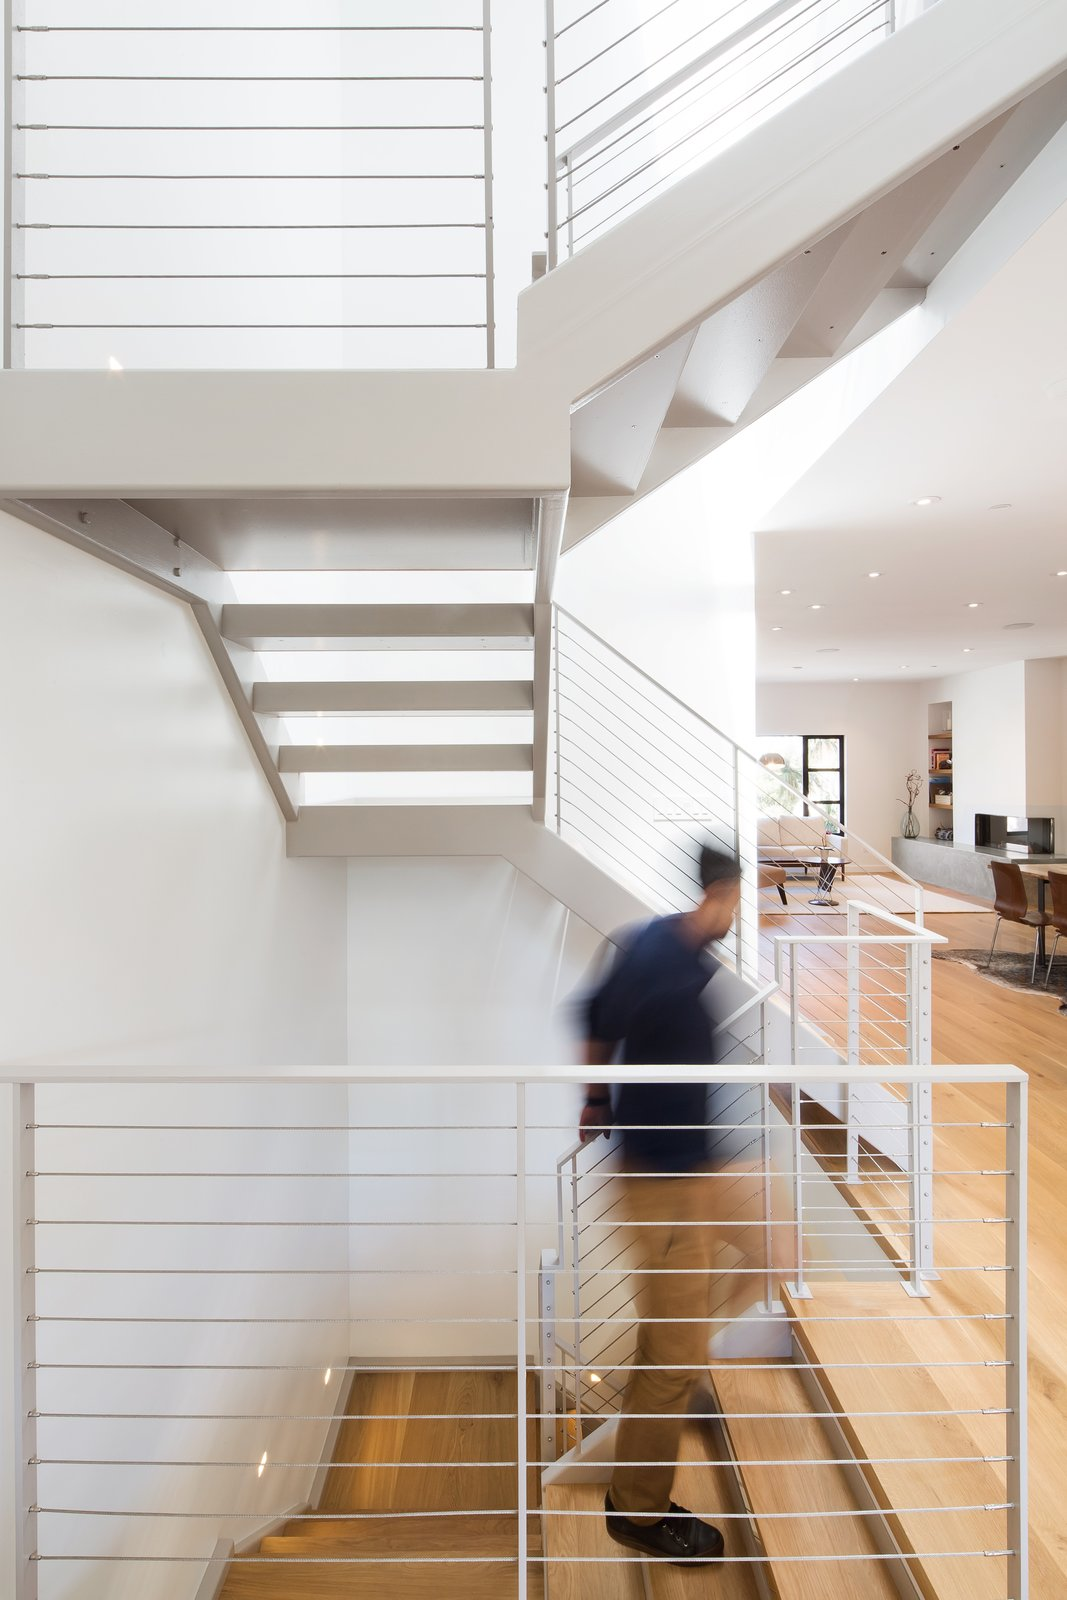 Main stair  27th Street - Noe Valley by patrick perez/designpad architecture